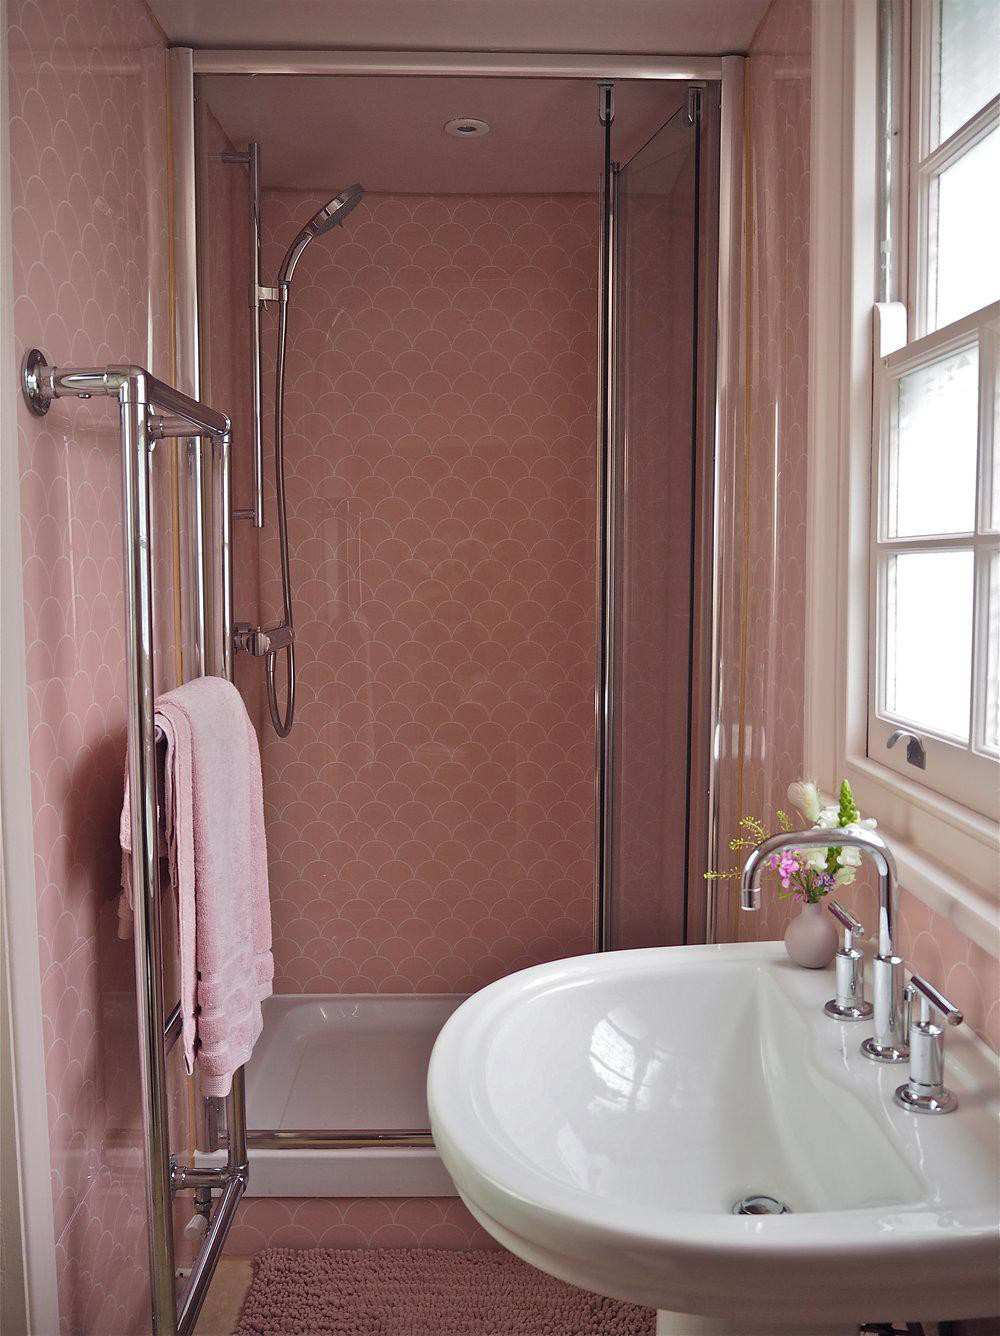 11. DIY Scalloped Pink Shower Wall